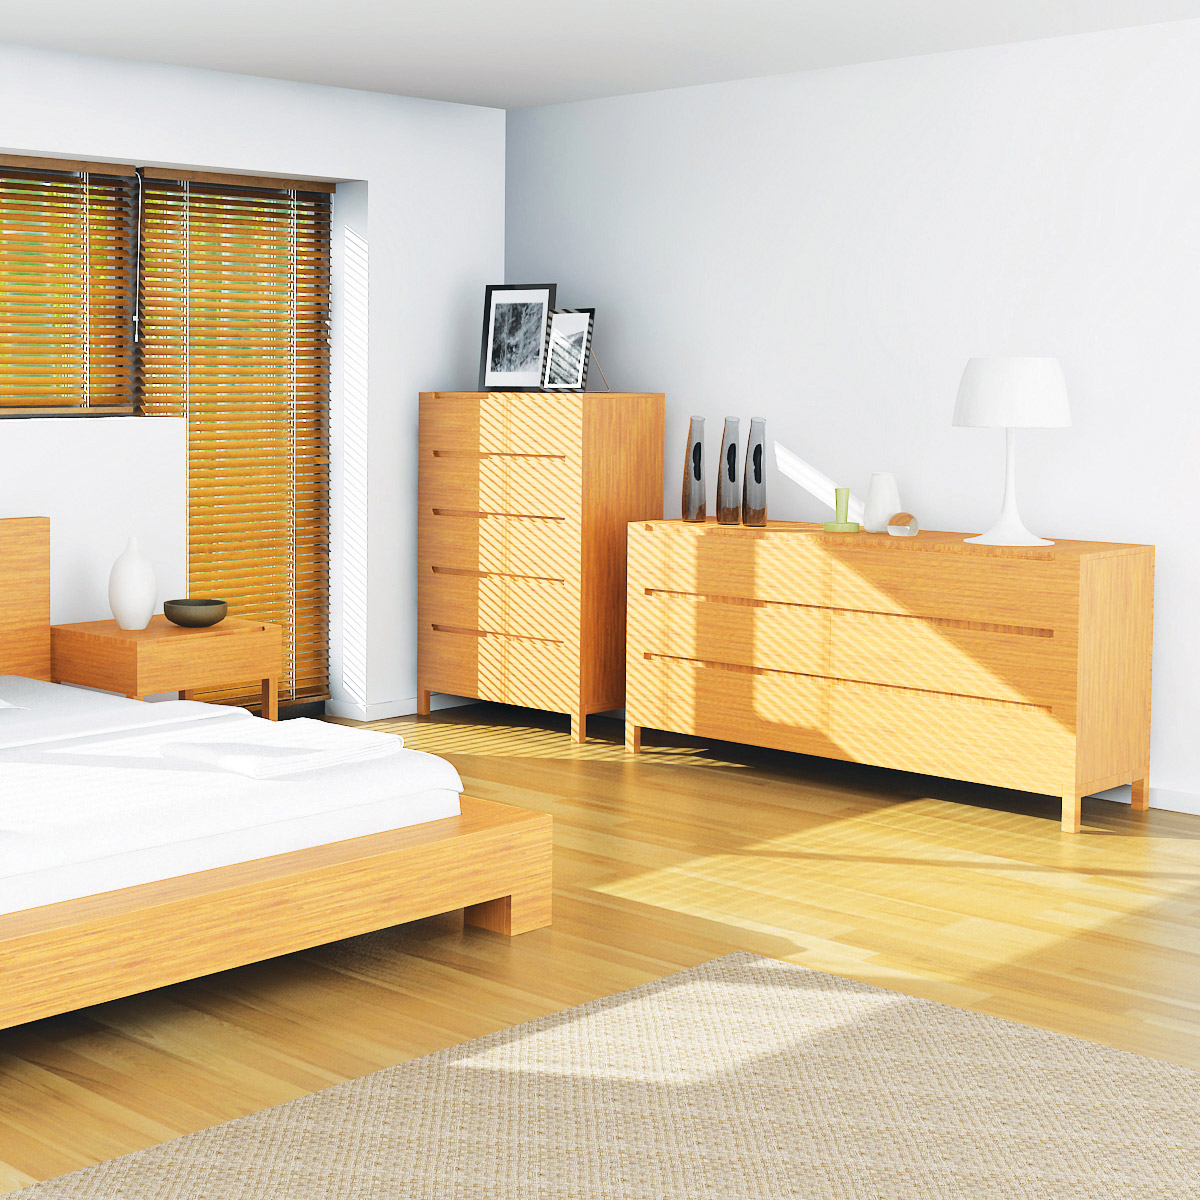 Enviro Bamboo 6 Drawer Dresser The Enviro Bamboo 6 Drawer dresser offers modern style with sustainable furniture construction.  A luxurious yet simple dresser with 6 easy glide drawers and notched drawer pulls. Coordinates with the Enviro Platform Bed.